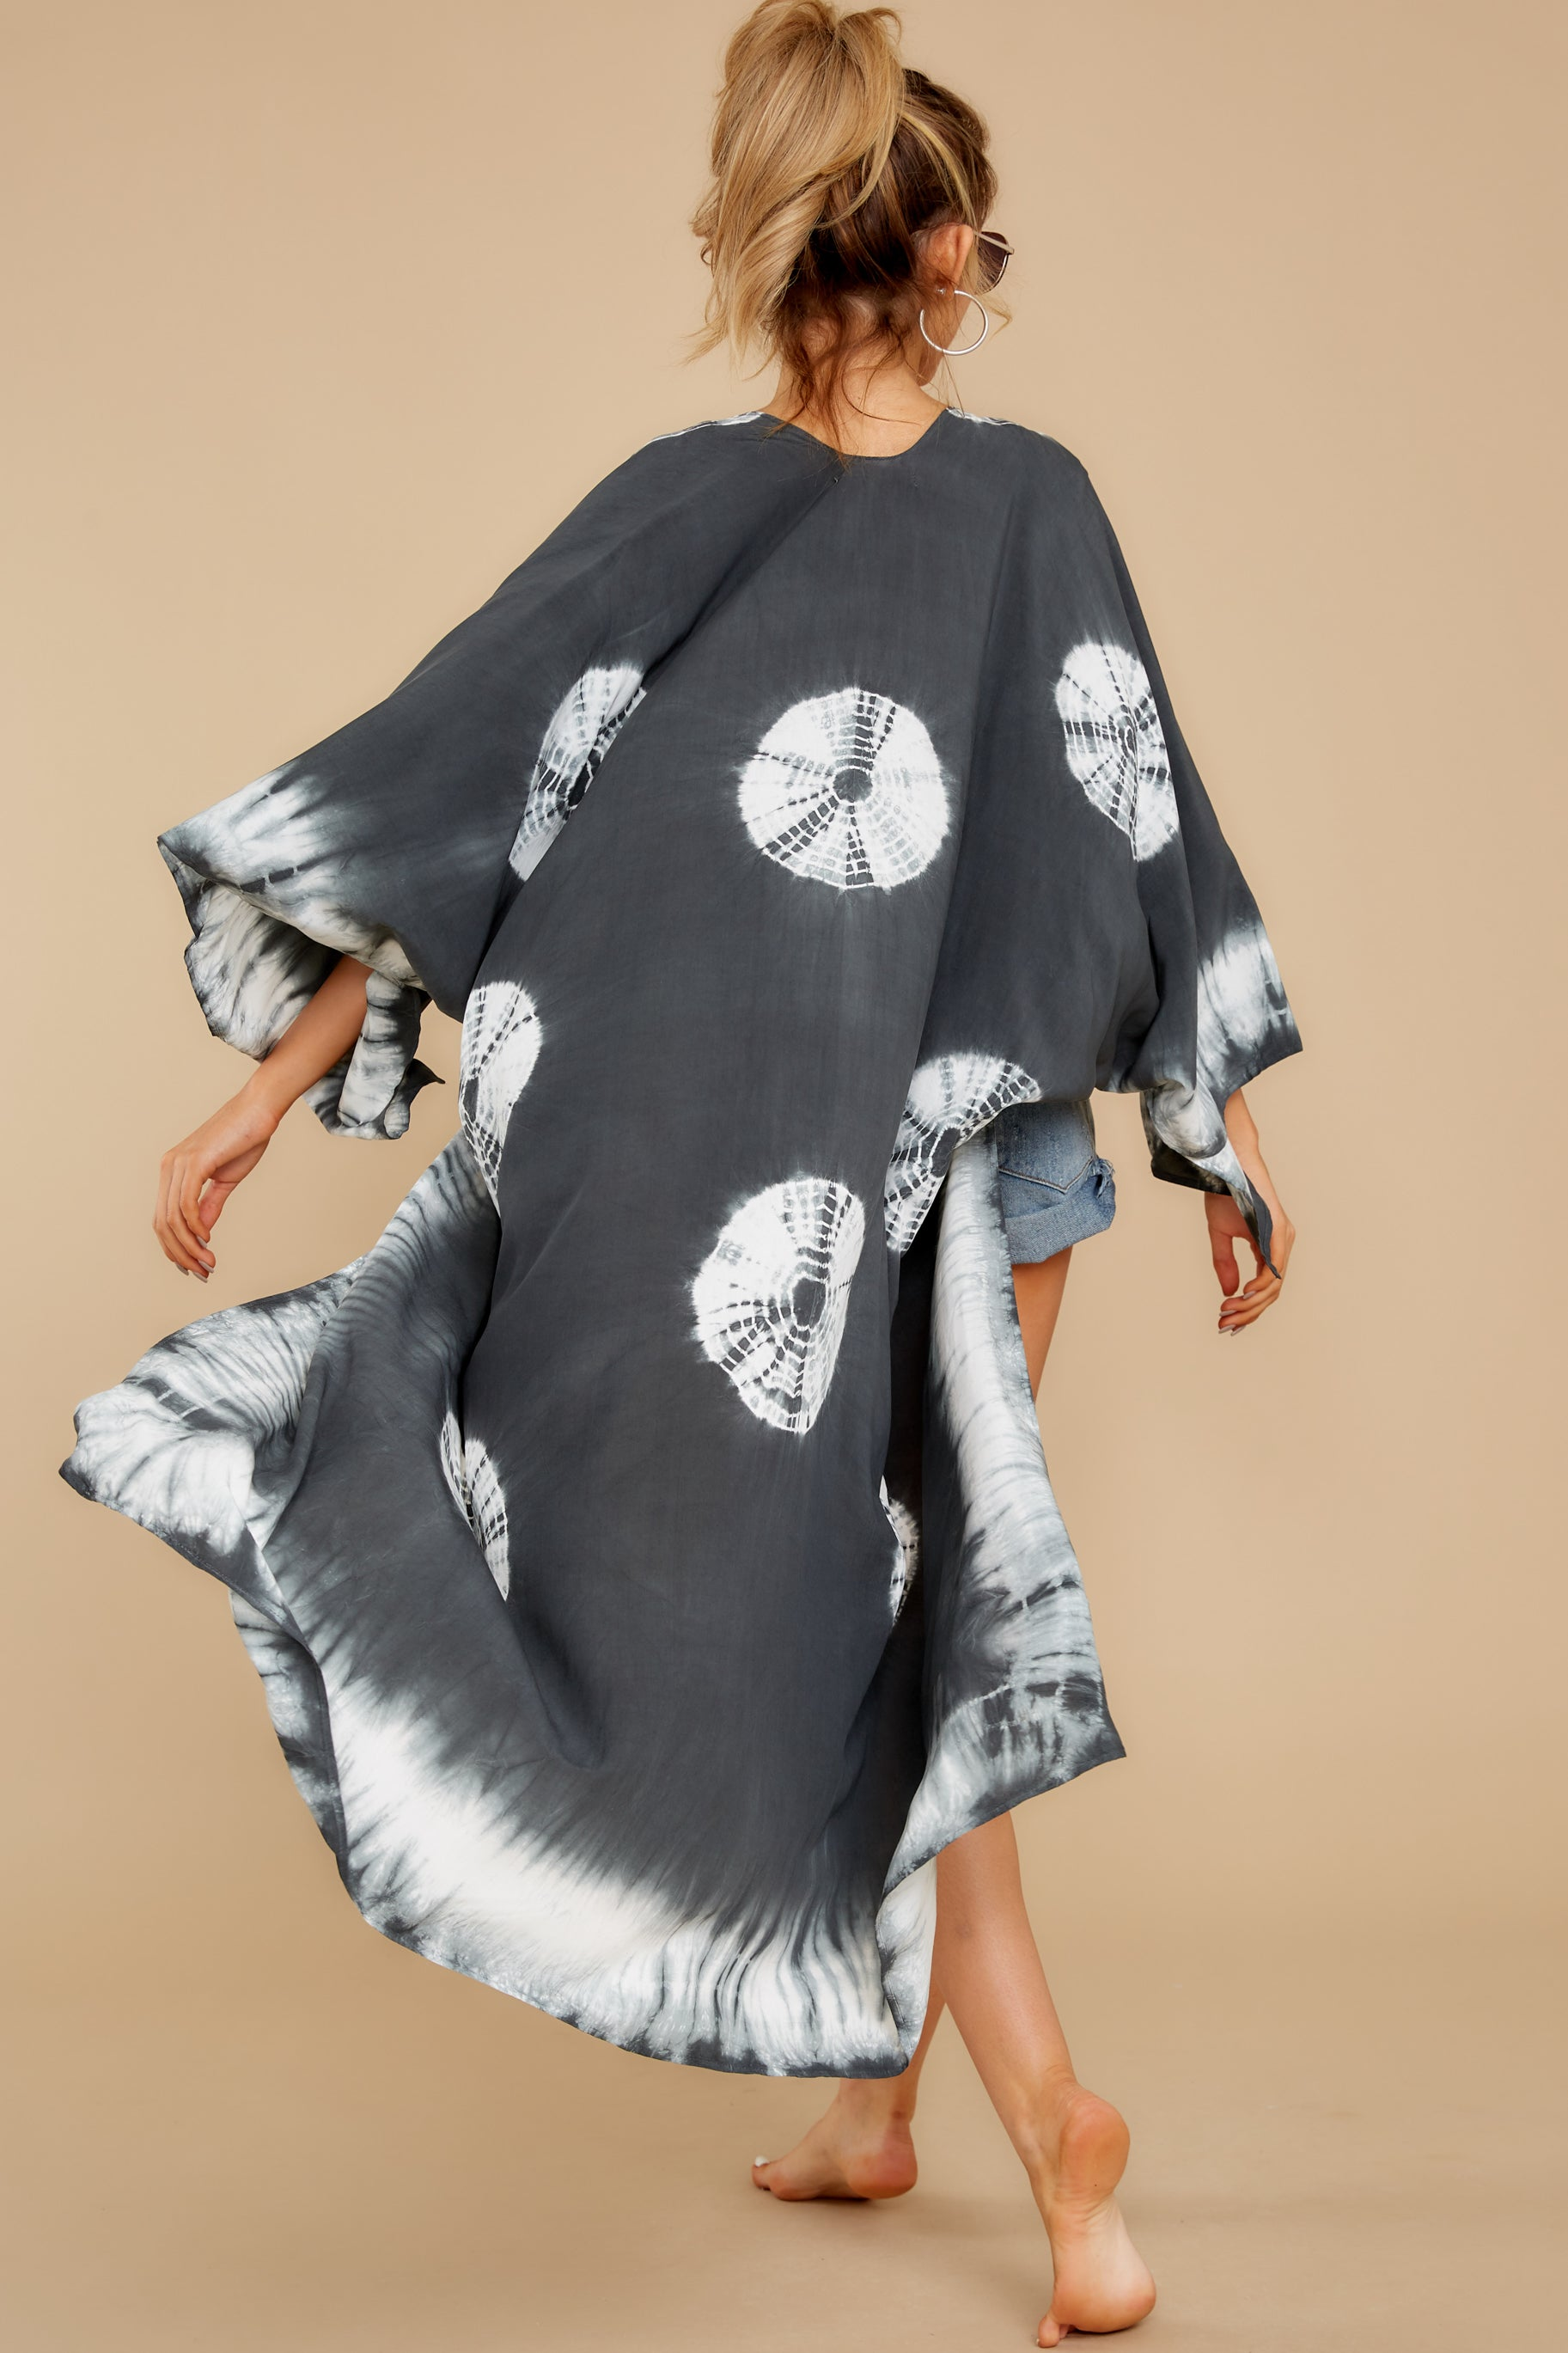 6 Focus On The Good Charcoal Tie Dye Kimono at reddress.com